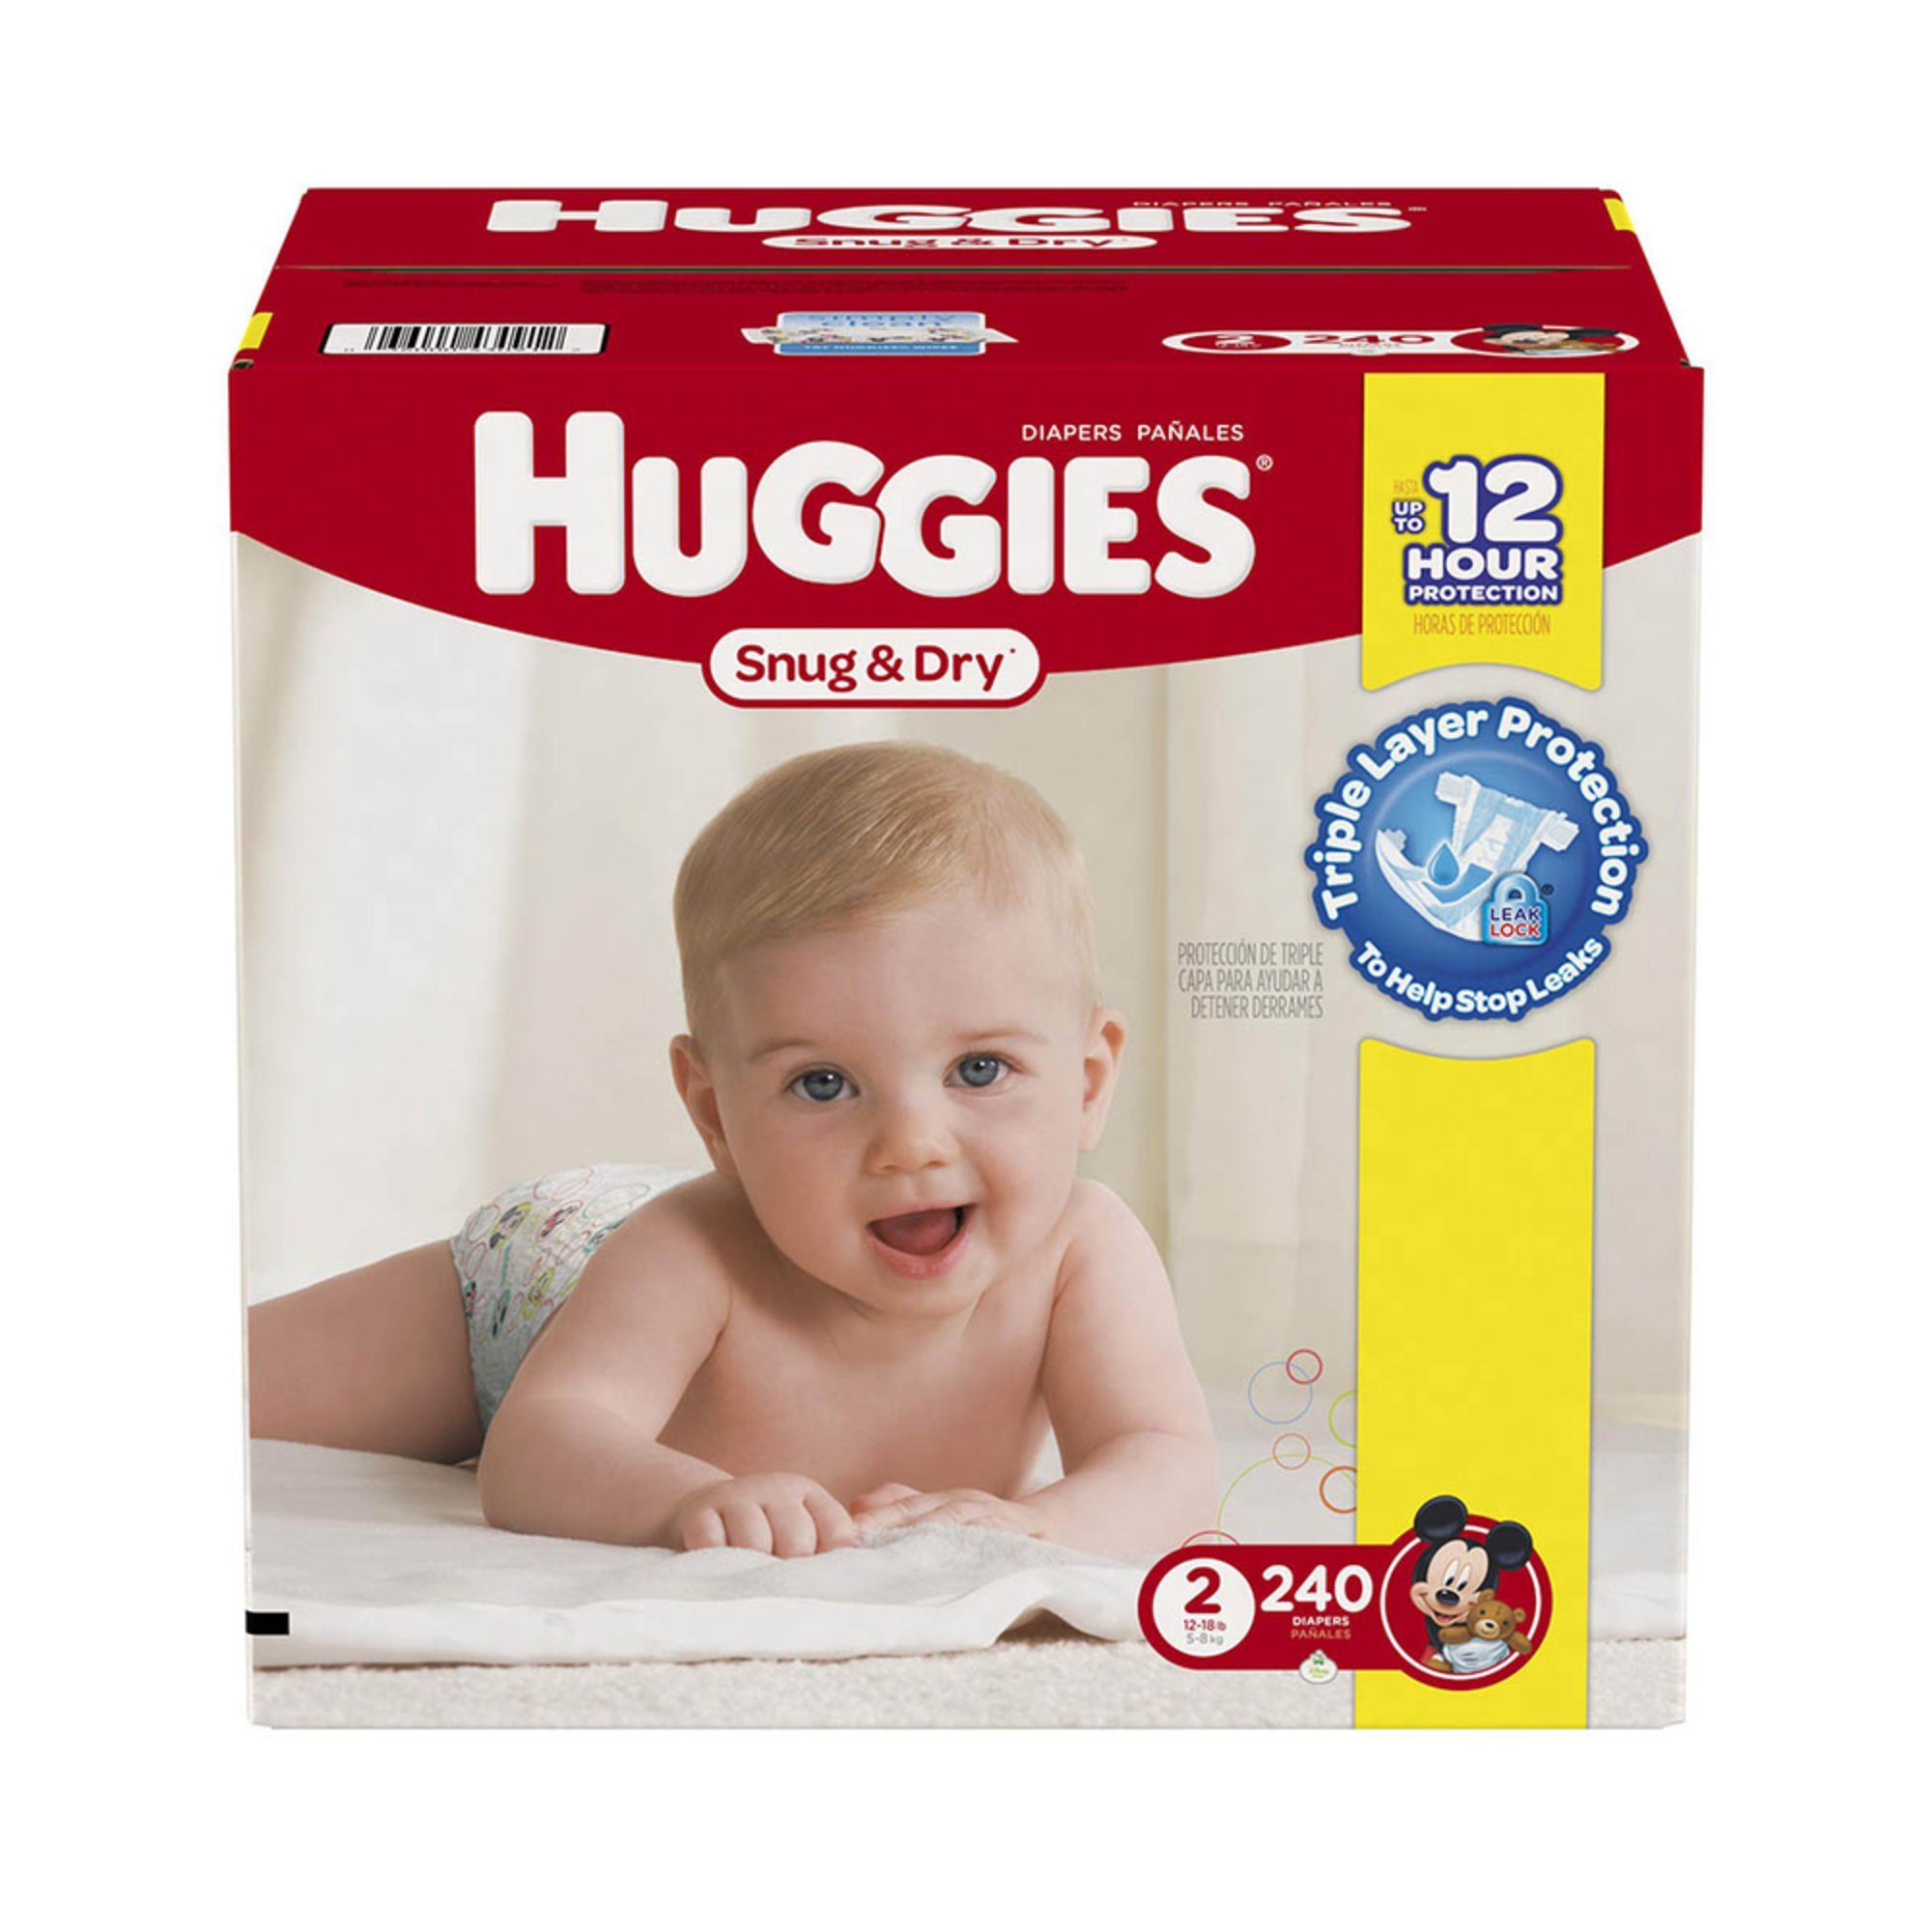 Huggies Little Snugglers Diapers will provide your baby gentle care and strong leakage protection For babies up to 14 lb. Proven leakage protection of the Leak Lock® SystemPrice: $